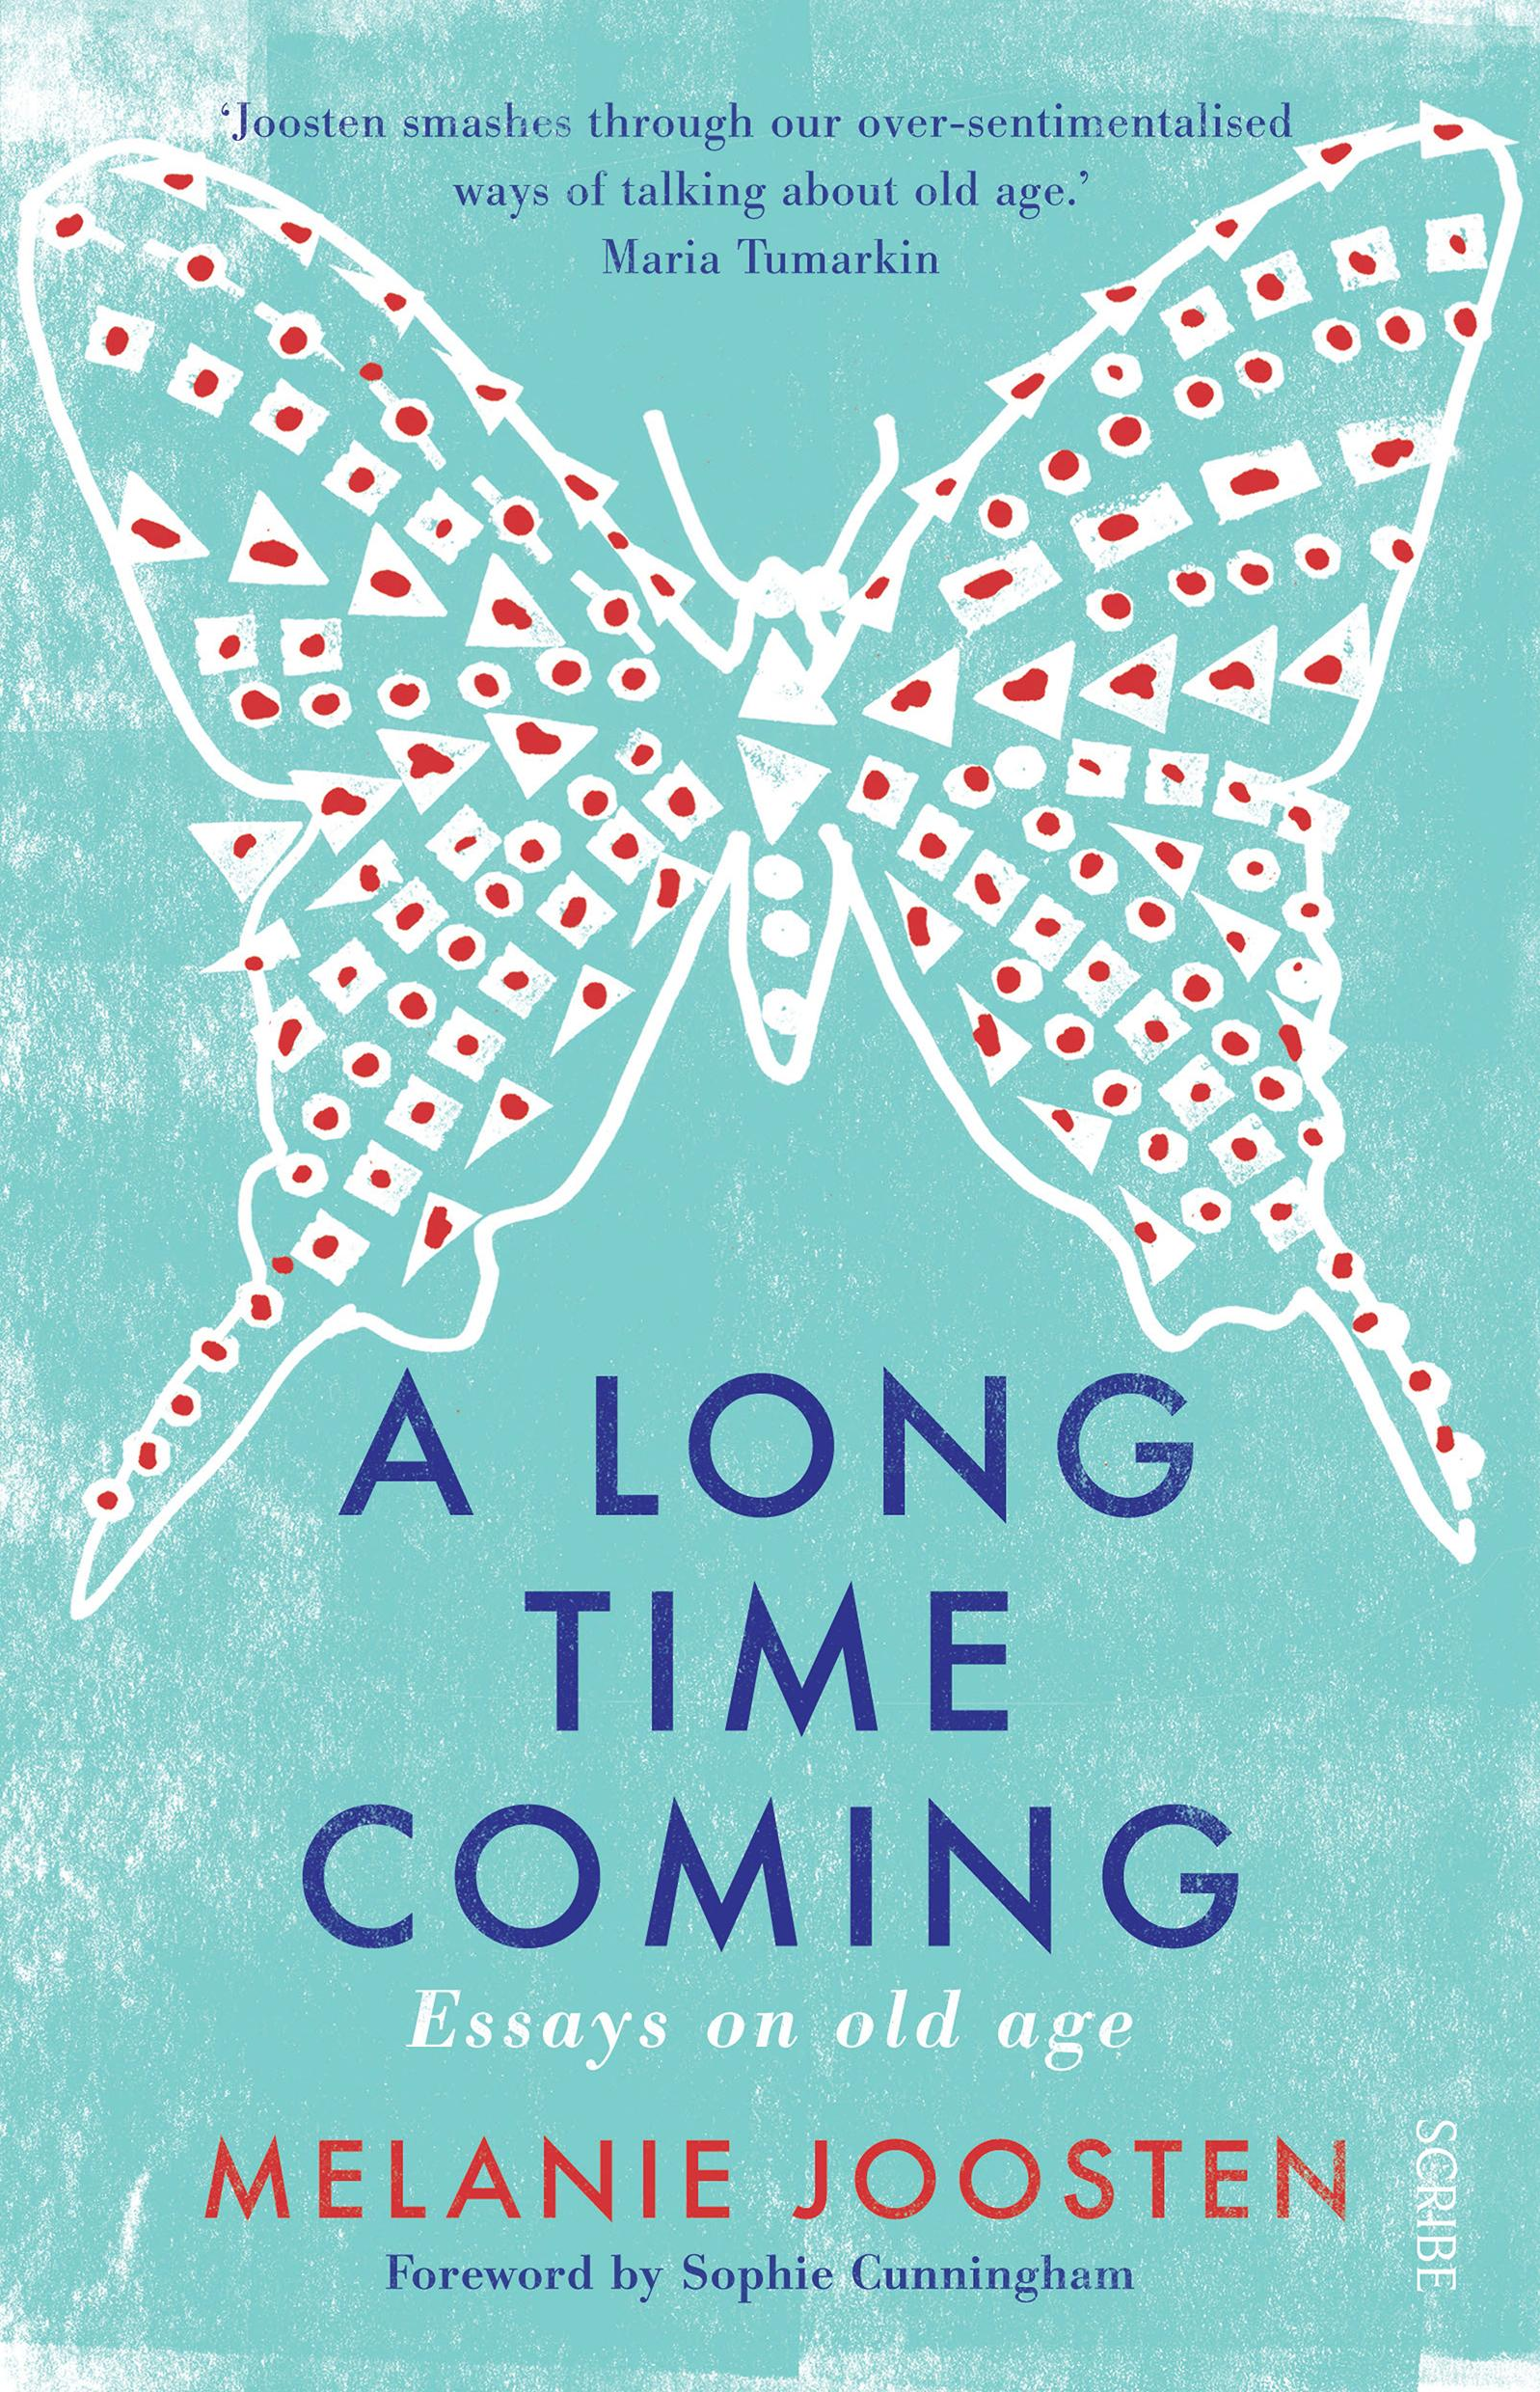 A Long Time Coming: Essays on old age